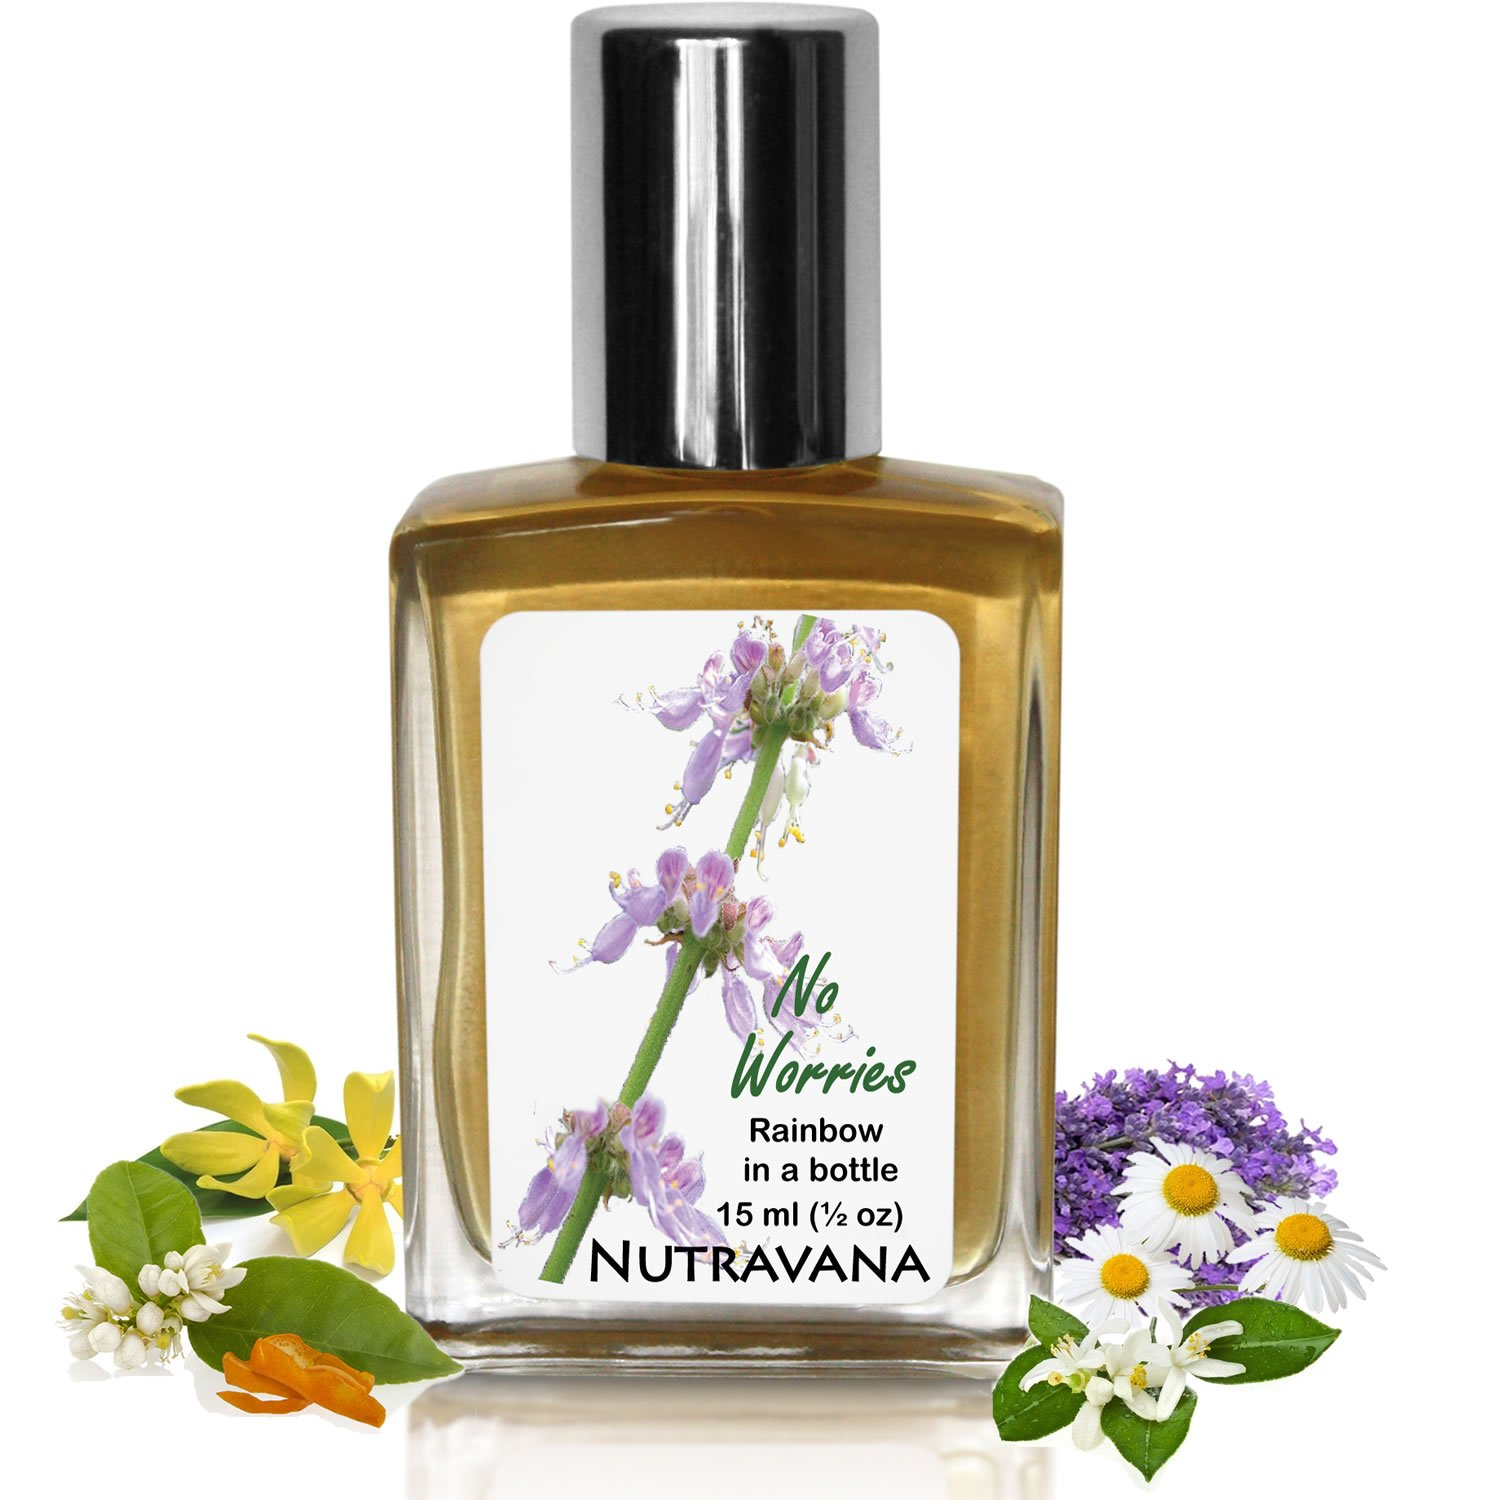 No Worries -Mood Lifting, Calming, Natural Anxiety Stress Relief Essential Oil Blend Embrace Life - Be Social, Increase Joy, Happiness Safe for Kids Nutravana -Ready to Roll-on Remedy -100% Guarantee